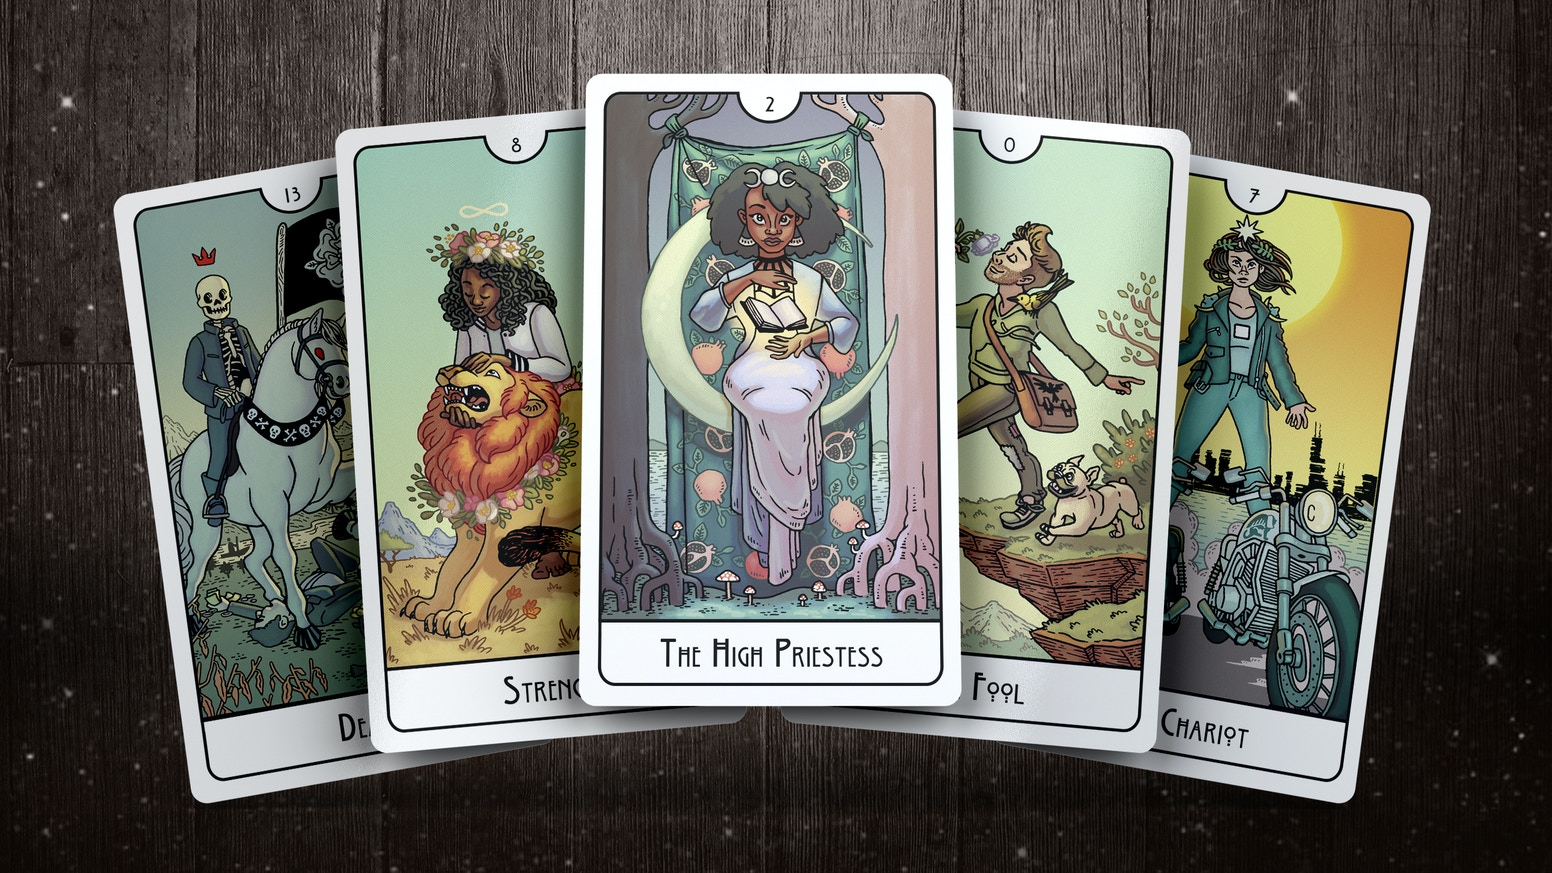 A modern 78-card Tarot deck in the Rider-Waite-Smith tradition.